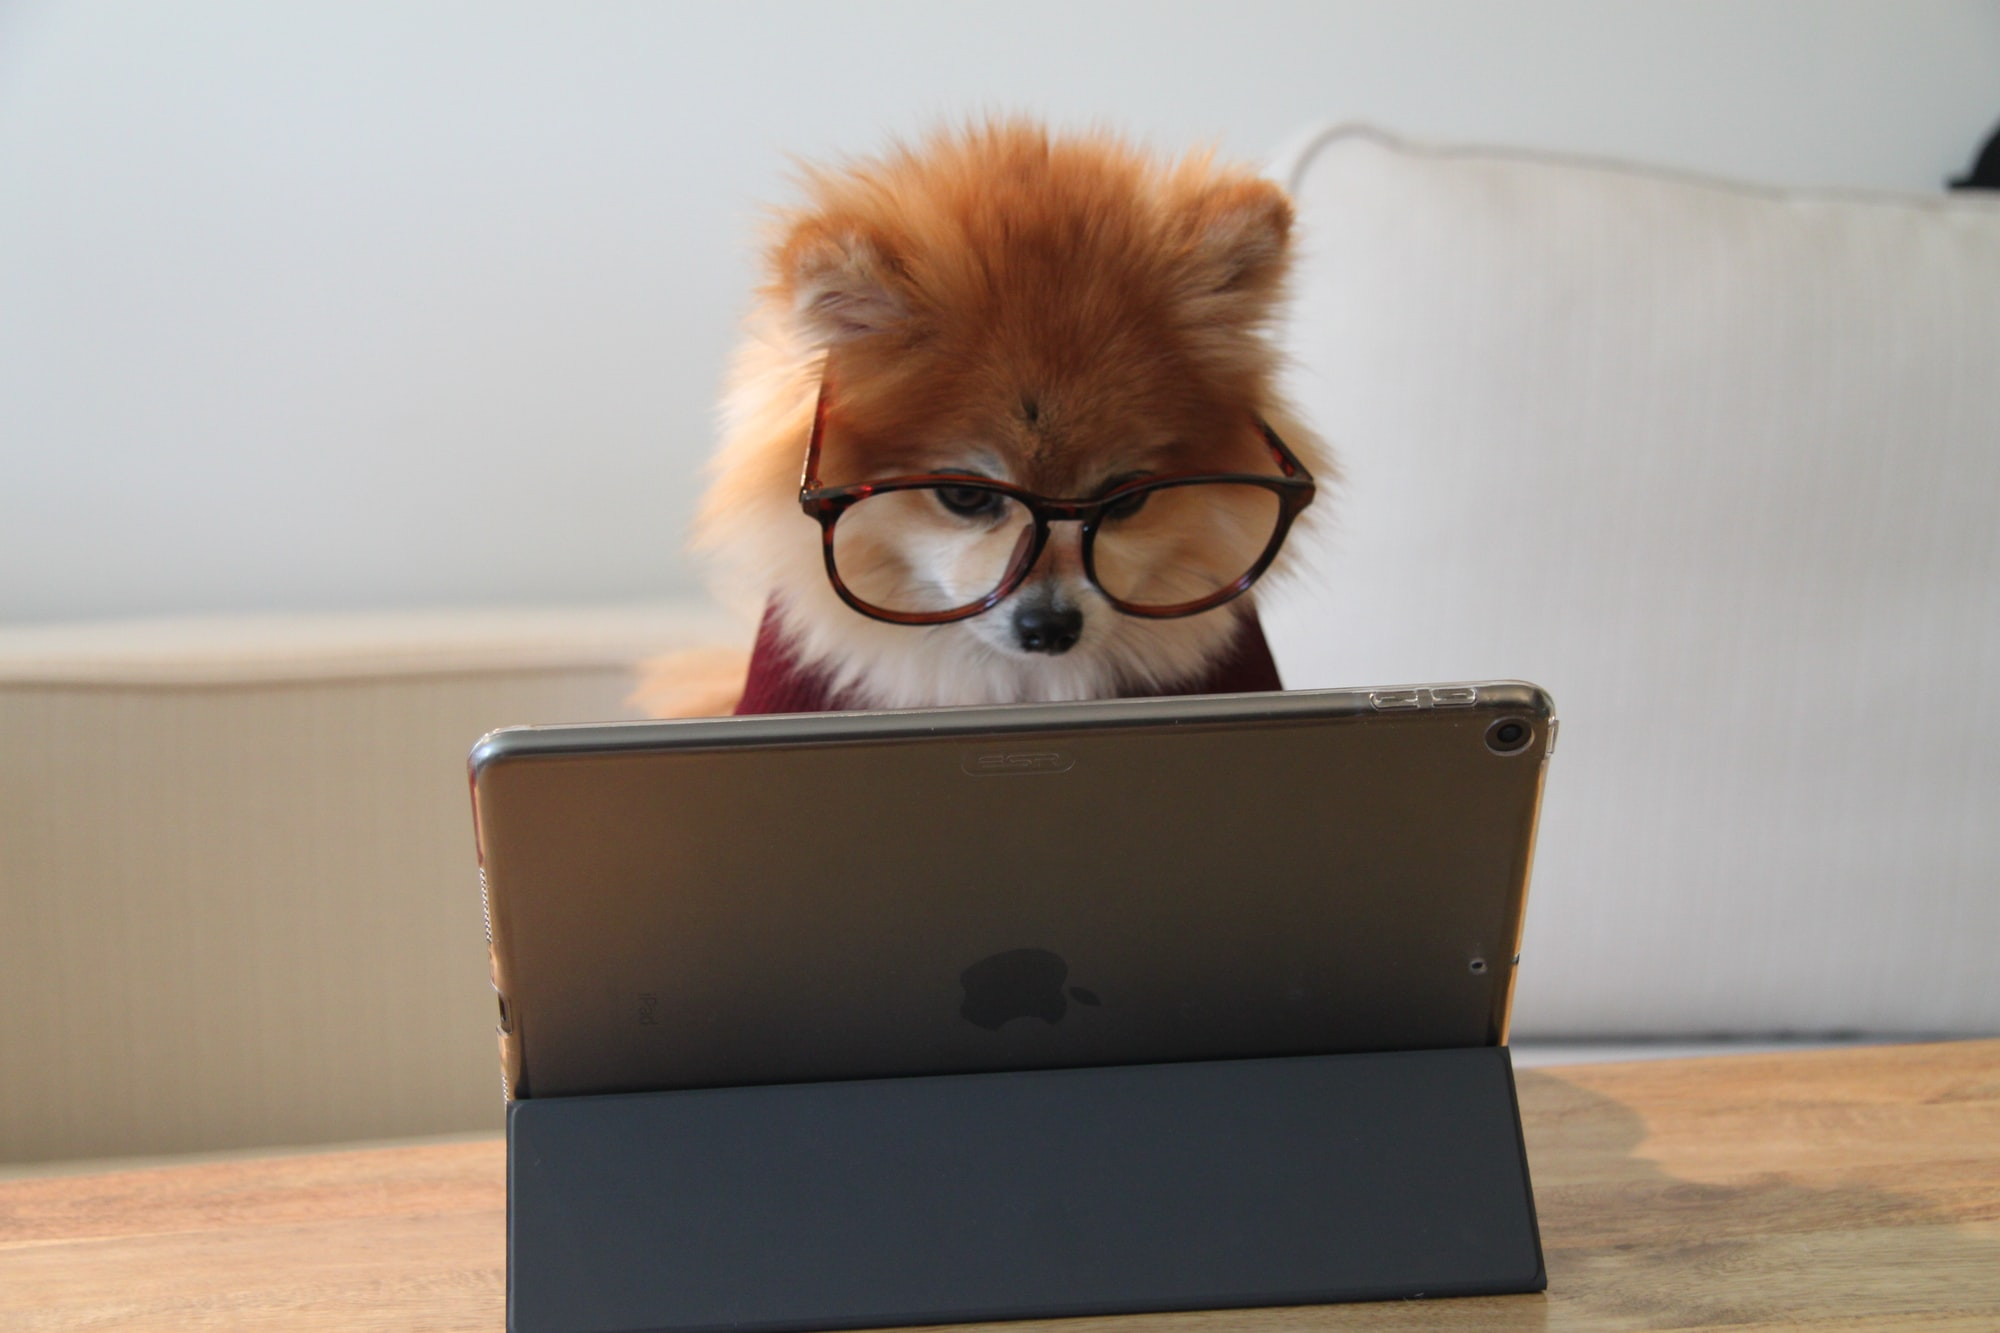 Pomeranian working on an iPad